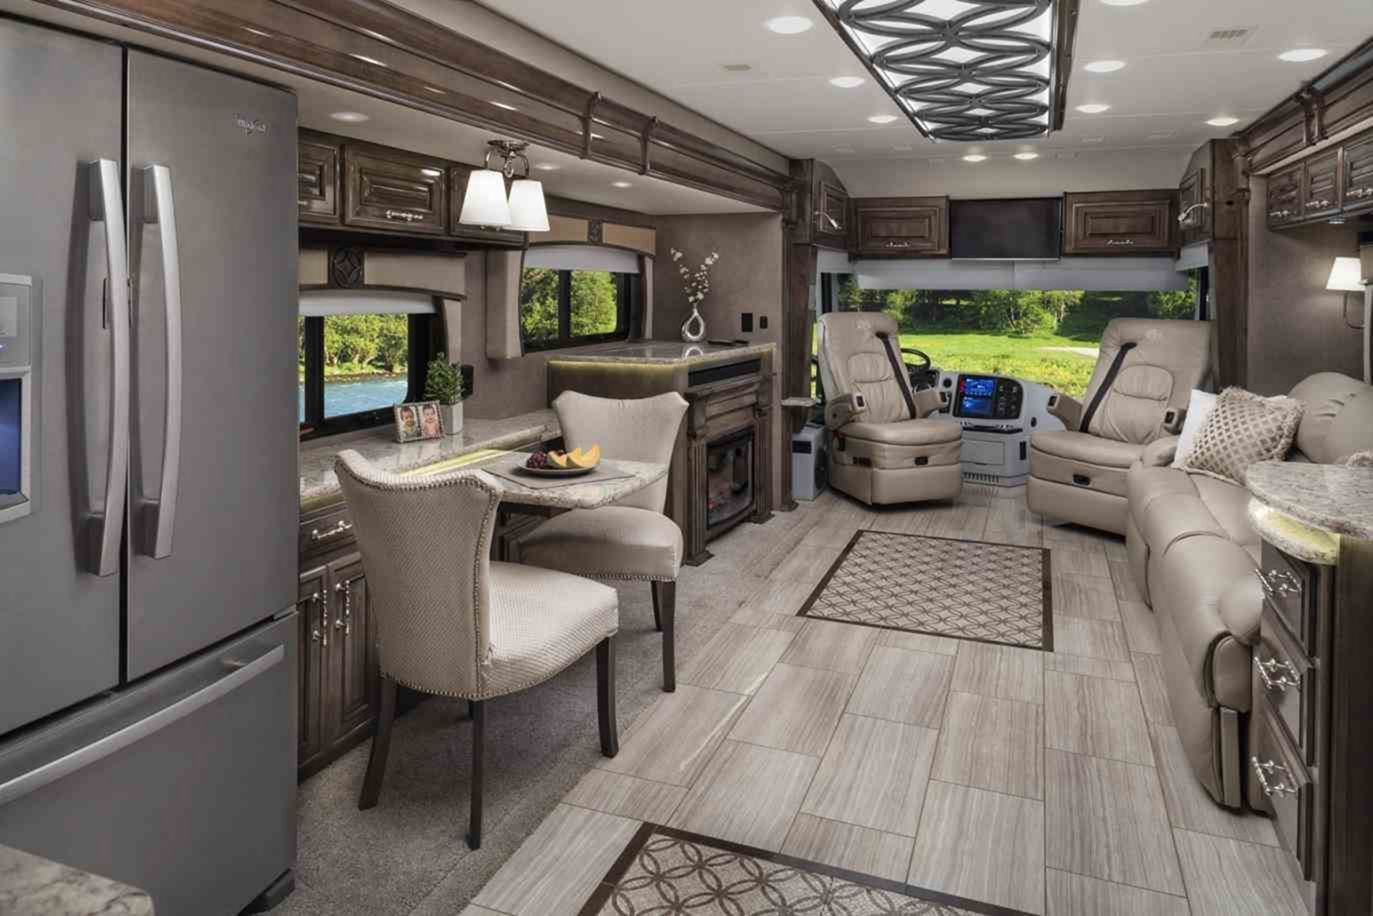 20 Most Amazing Rv Camper Interiors For Renovation Inspiration